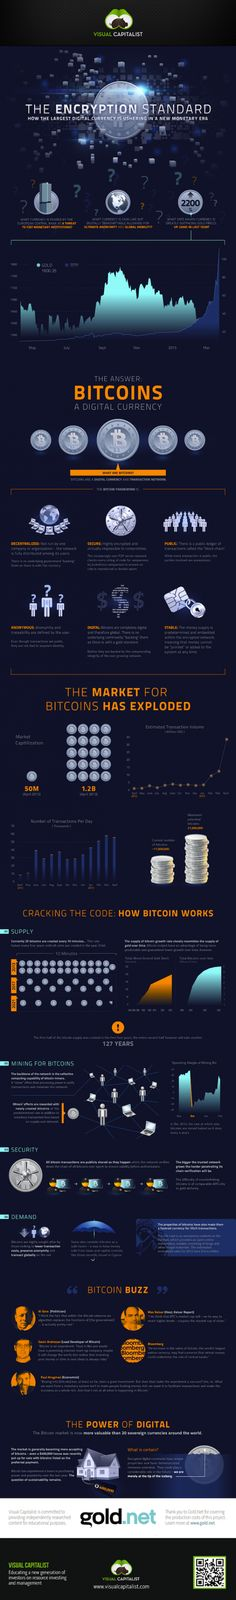 #Bitcoin: The Encryption Standard Infographic